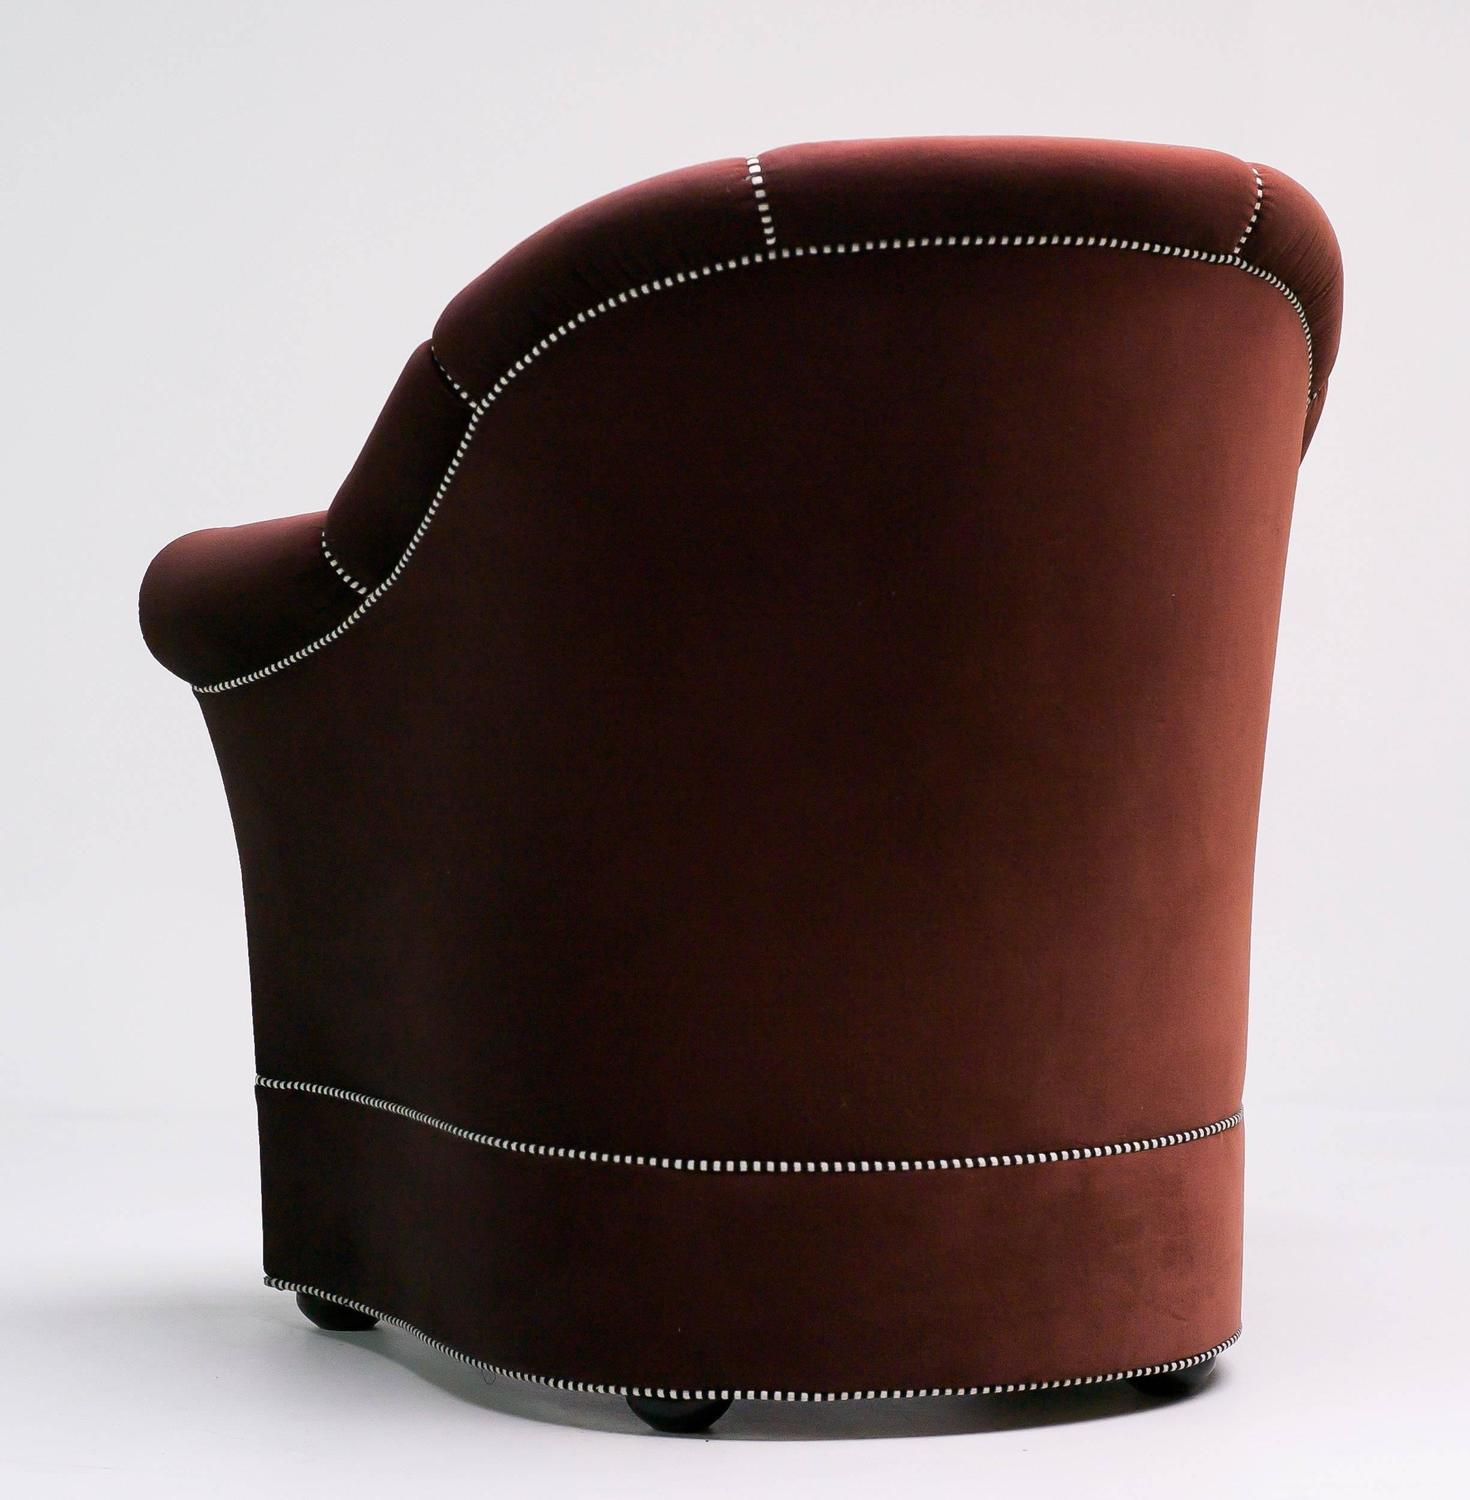 Furnitureinfashion Is Offering Very Affordable Arctic: Vienna Secession Lounge Chair By Josef Hoffmann For